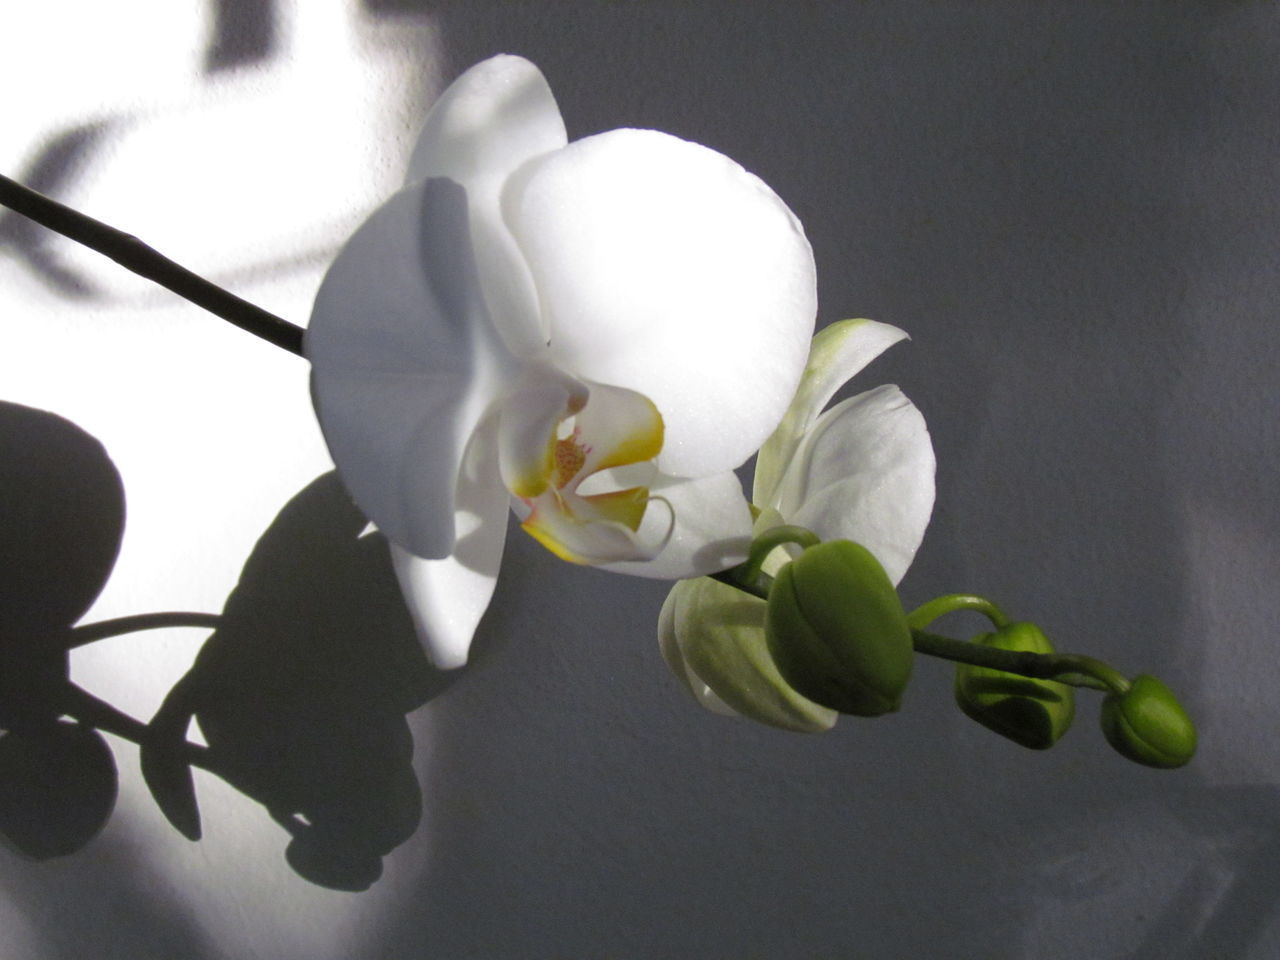 White Color Close-up Freshness Fragility Flower Beauty In Nature Growth Nature Plant Flower Head No People Day Outdoors EyeEm Gallery Nature_collection Orchids EyeEm Gallery Kikosene Orchids Collection Orchid Plant Petal Brazil Photography Beauty In Nature Eyeemphotography